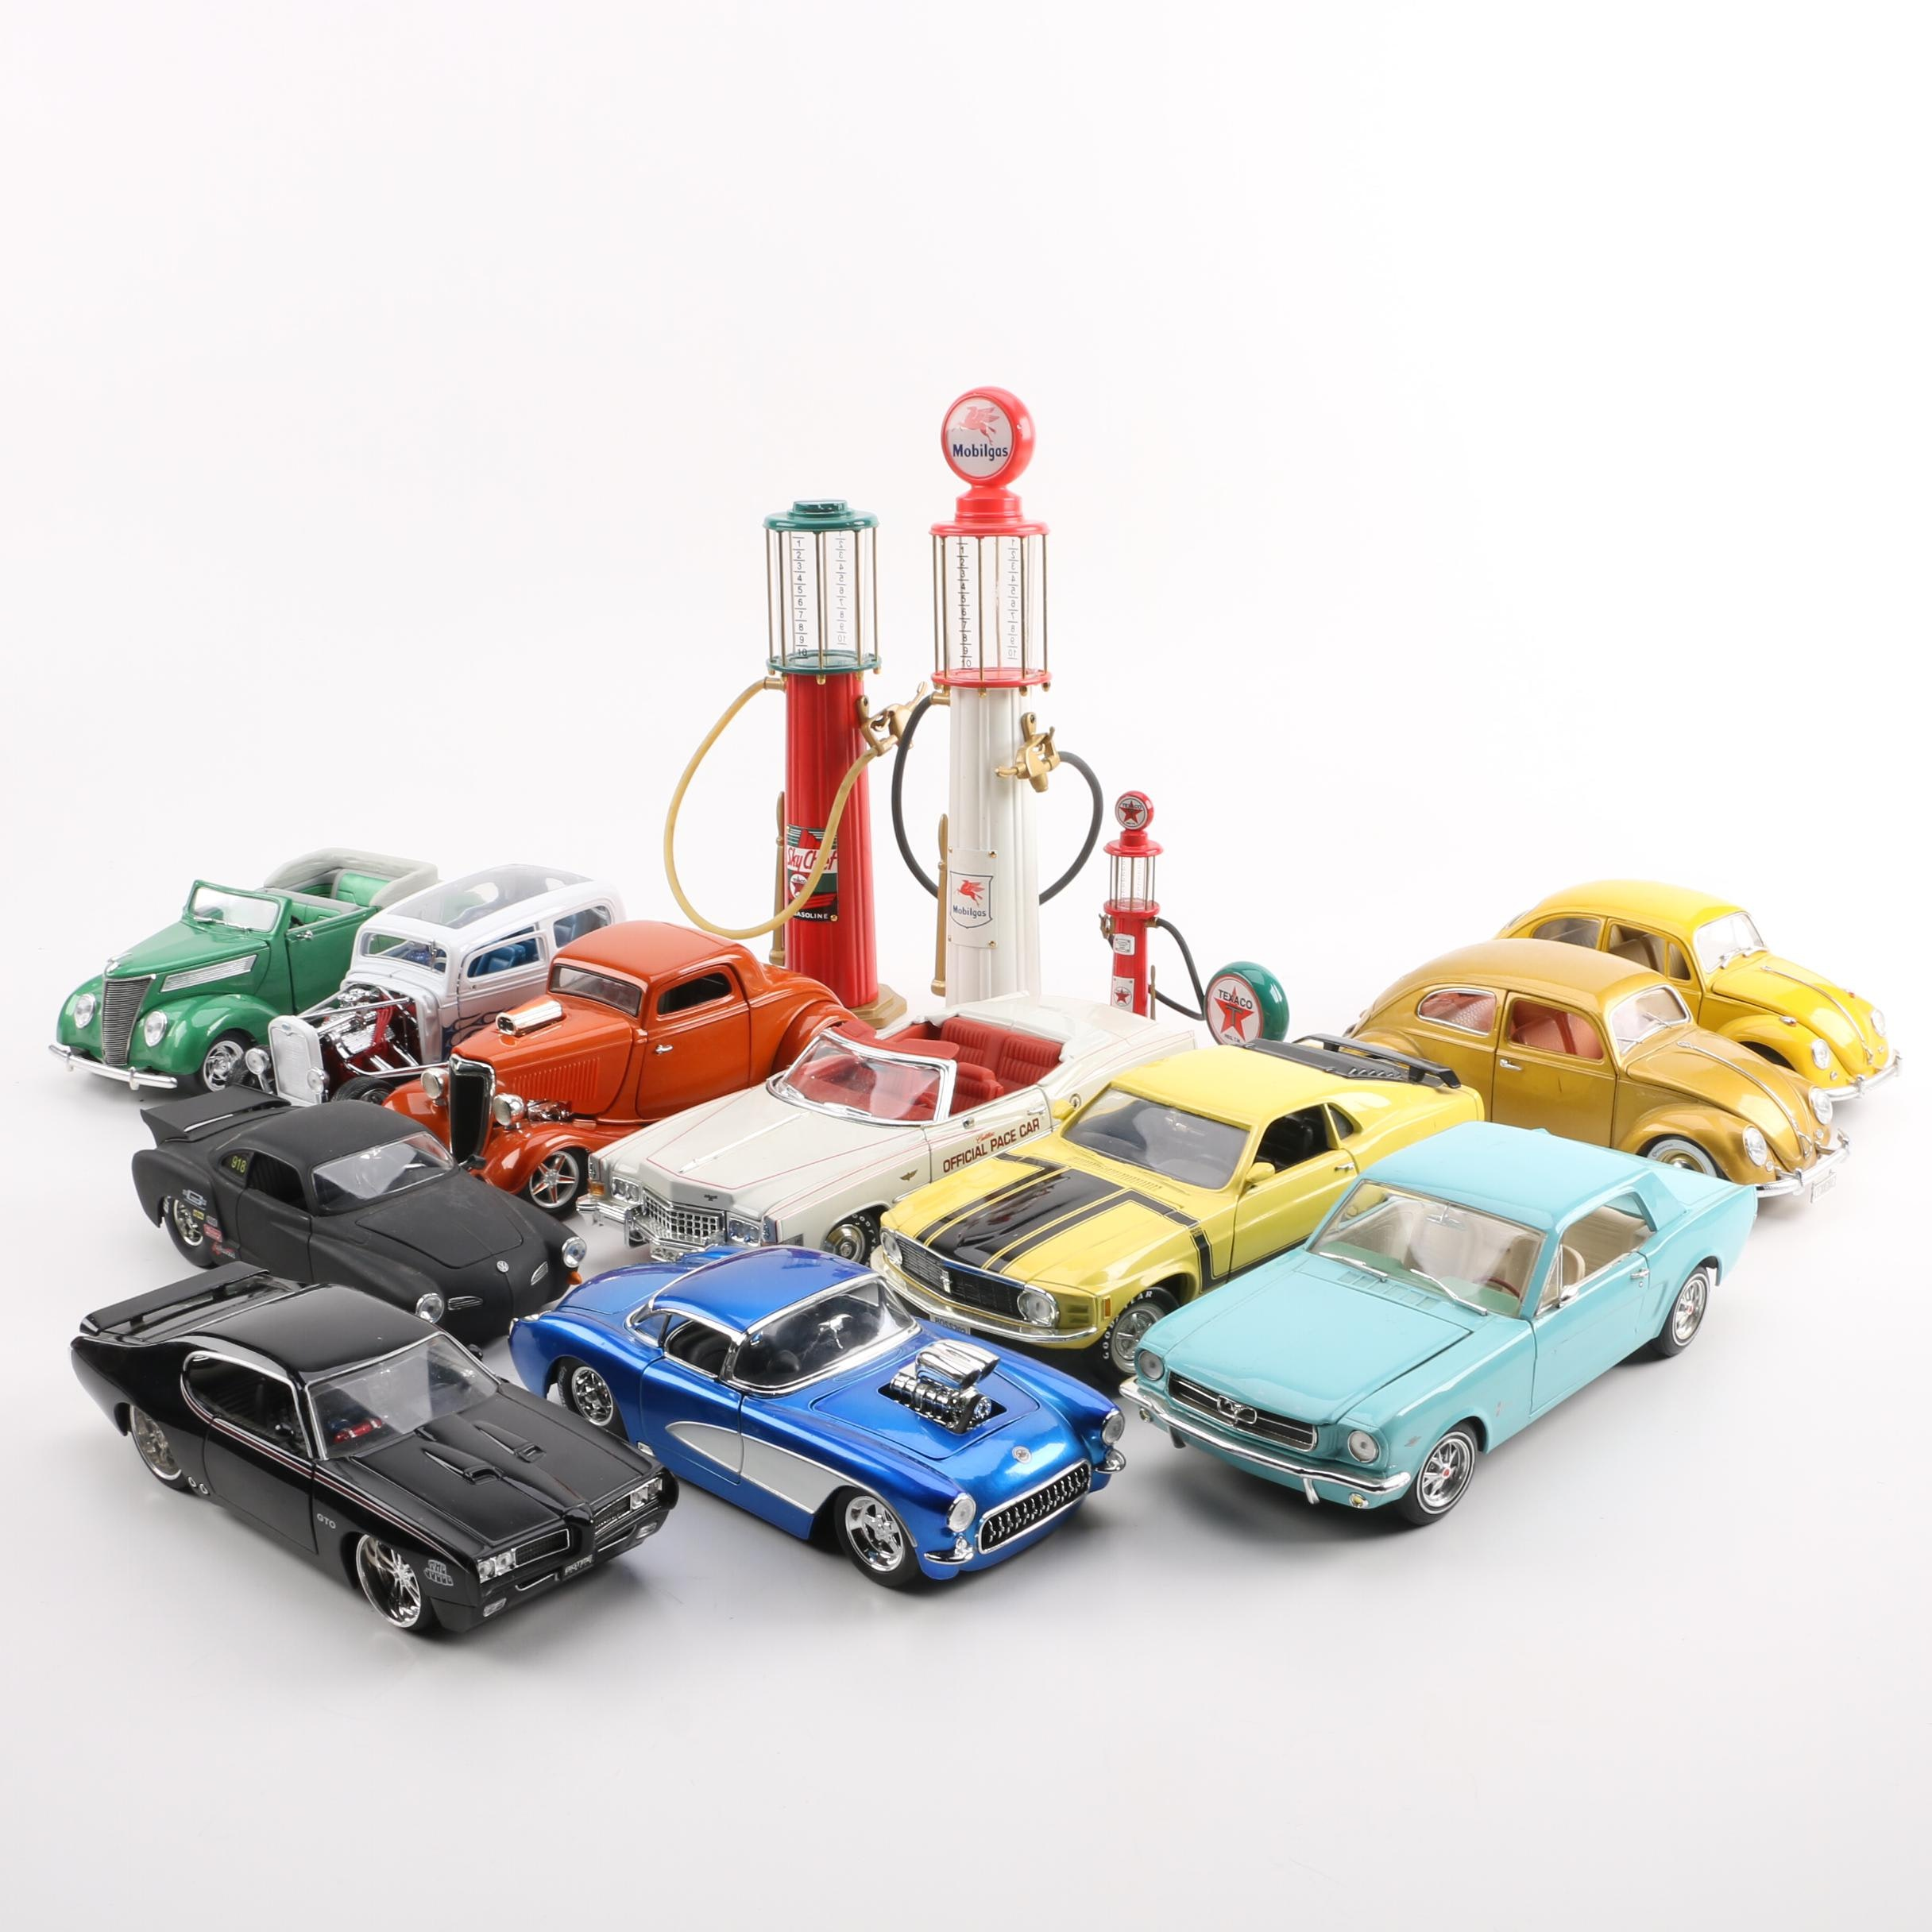 Die-Cast Cars and Gas Pumps